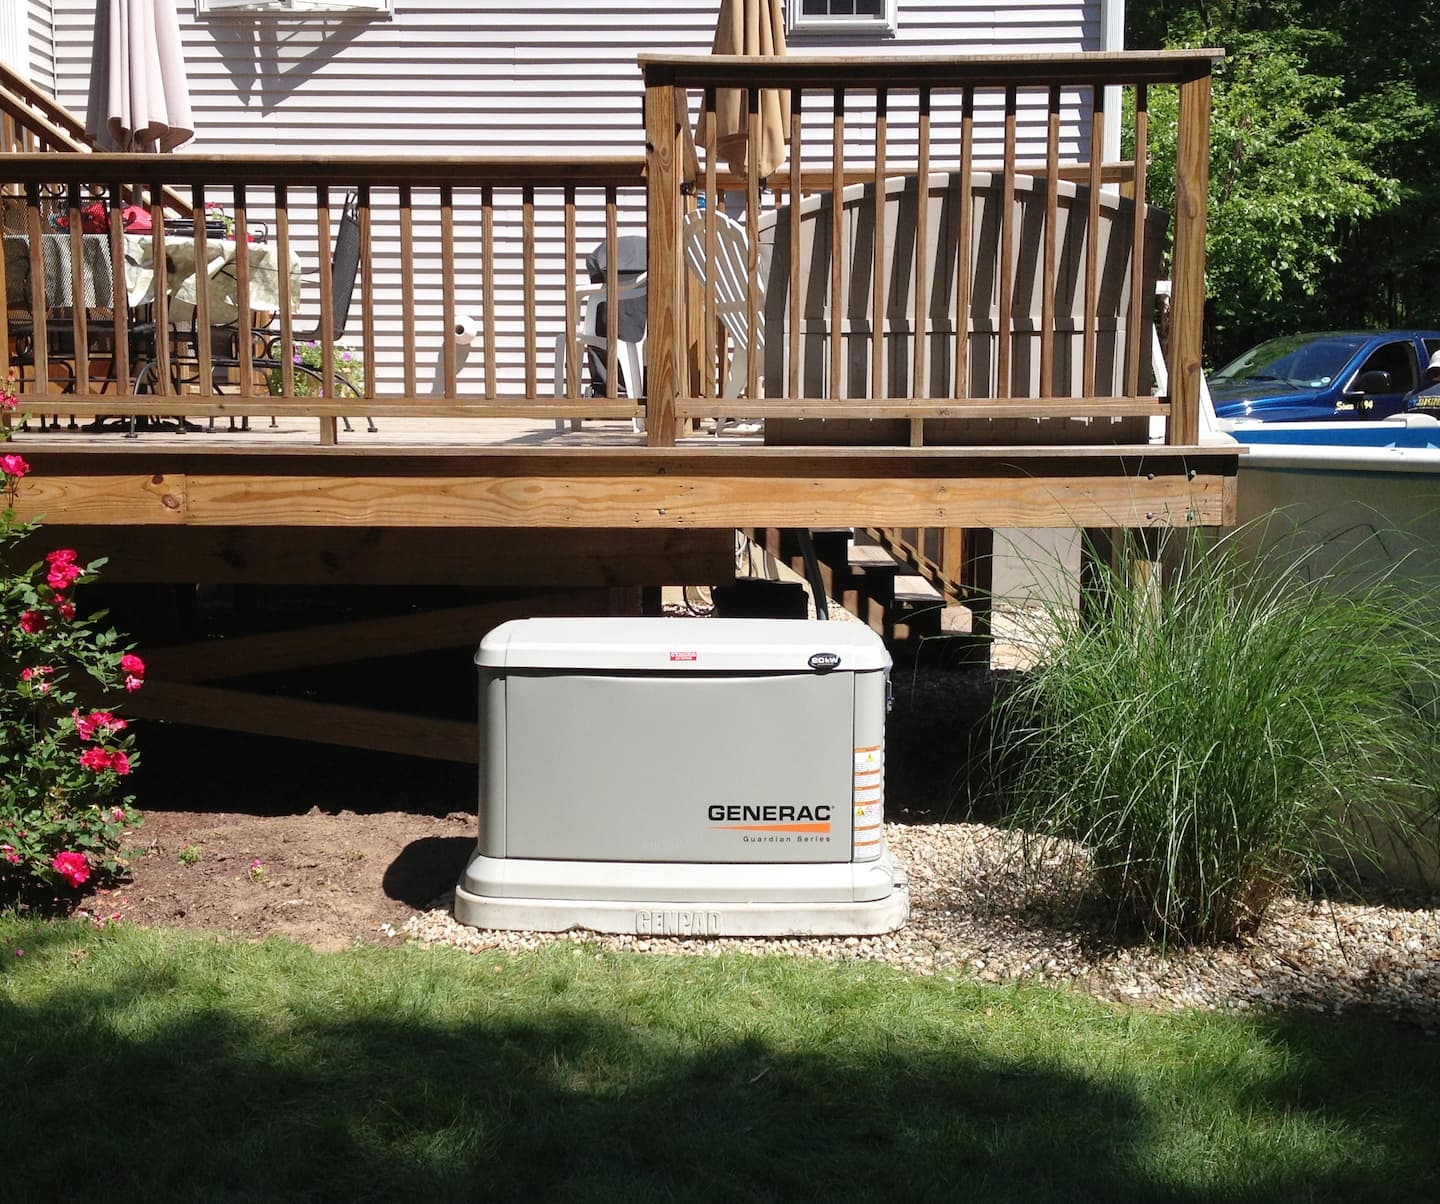 How Much Does Generator Repair Cost? | Angie's List